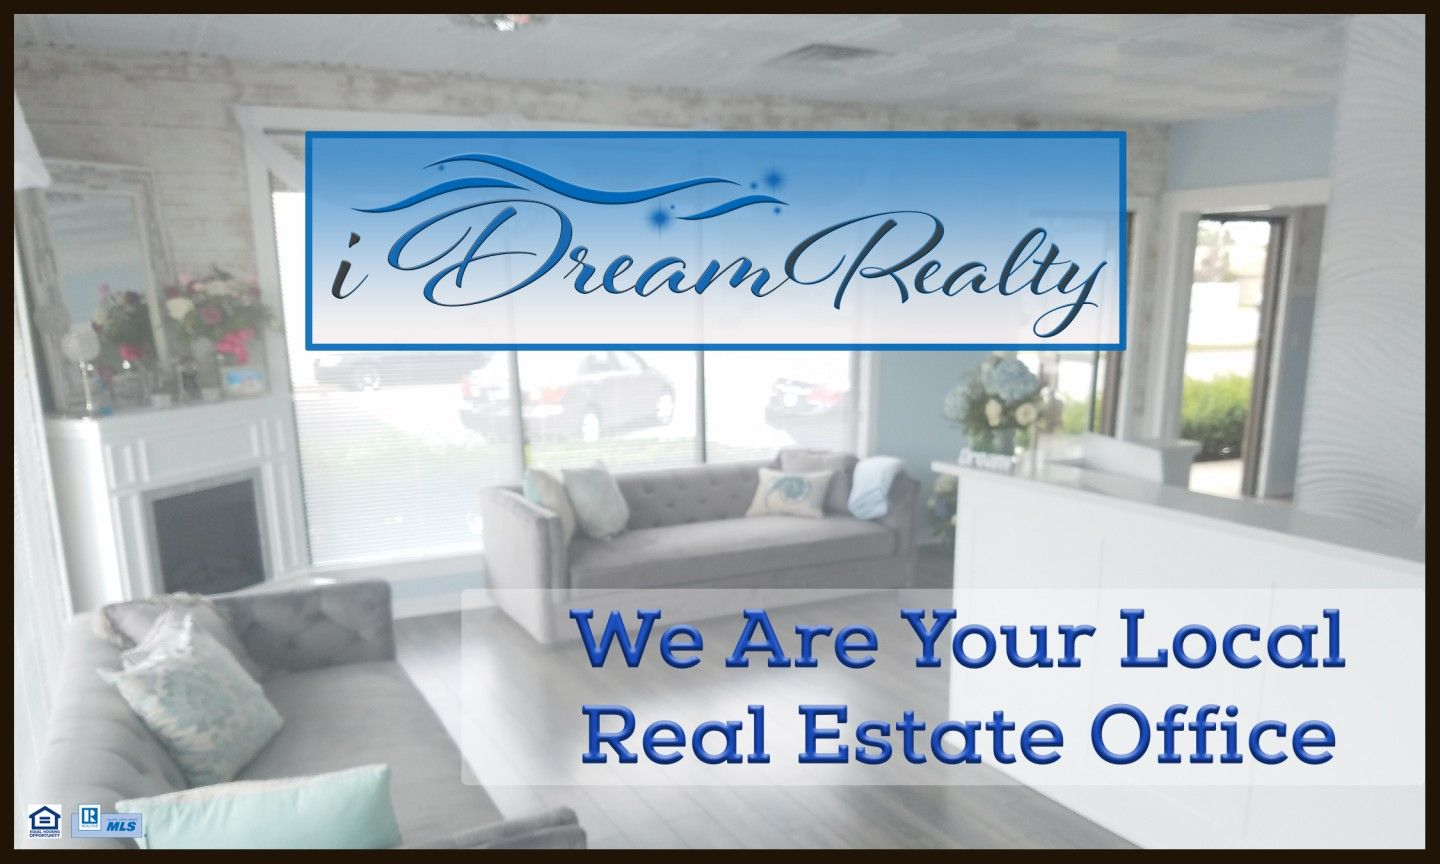 We Are Your Local Real Estate Office